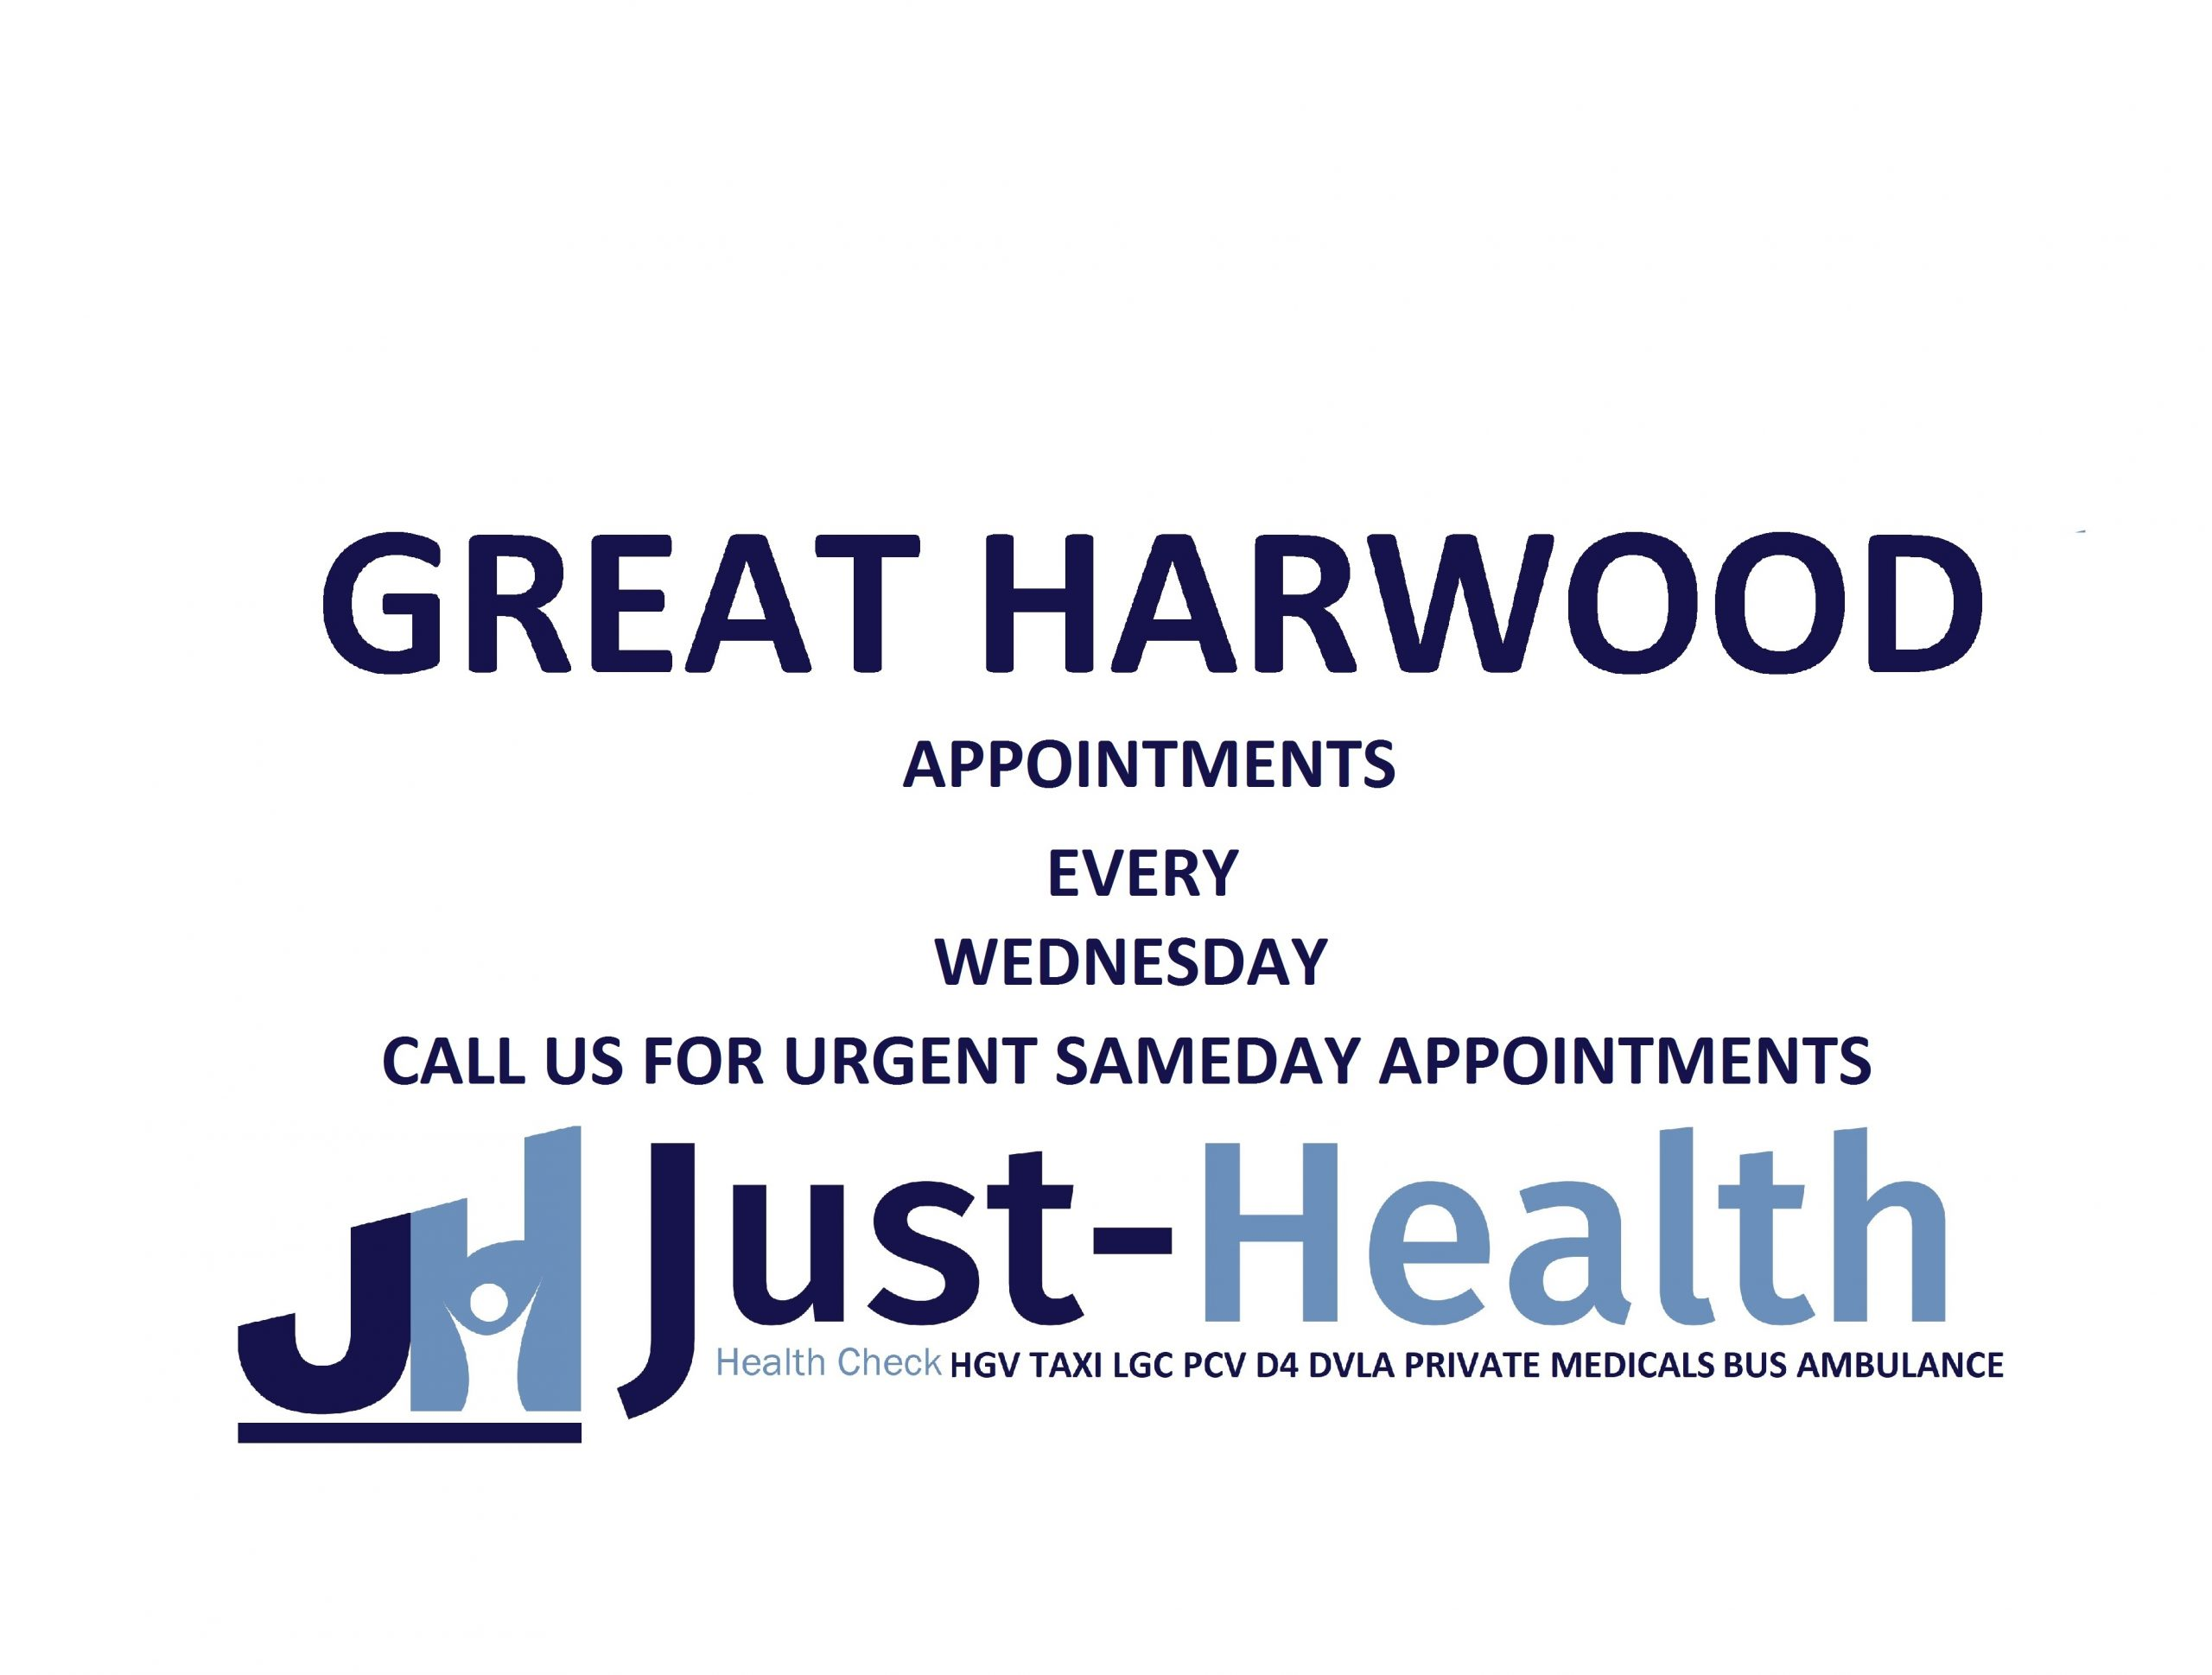 great harwood blackburn just health D4 HGV Medical £50 includes eye test, GMC Registered Doctors Nationwide clinics, Open 7 days a week near you Book online 24-7 Burnley